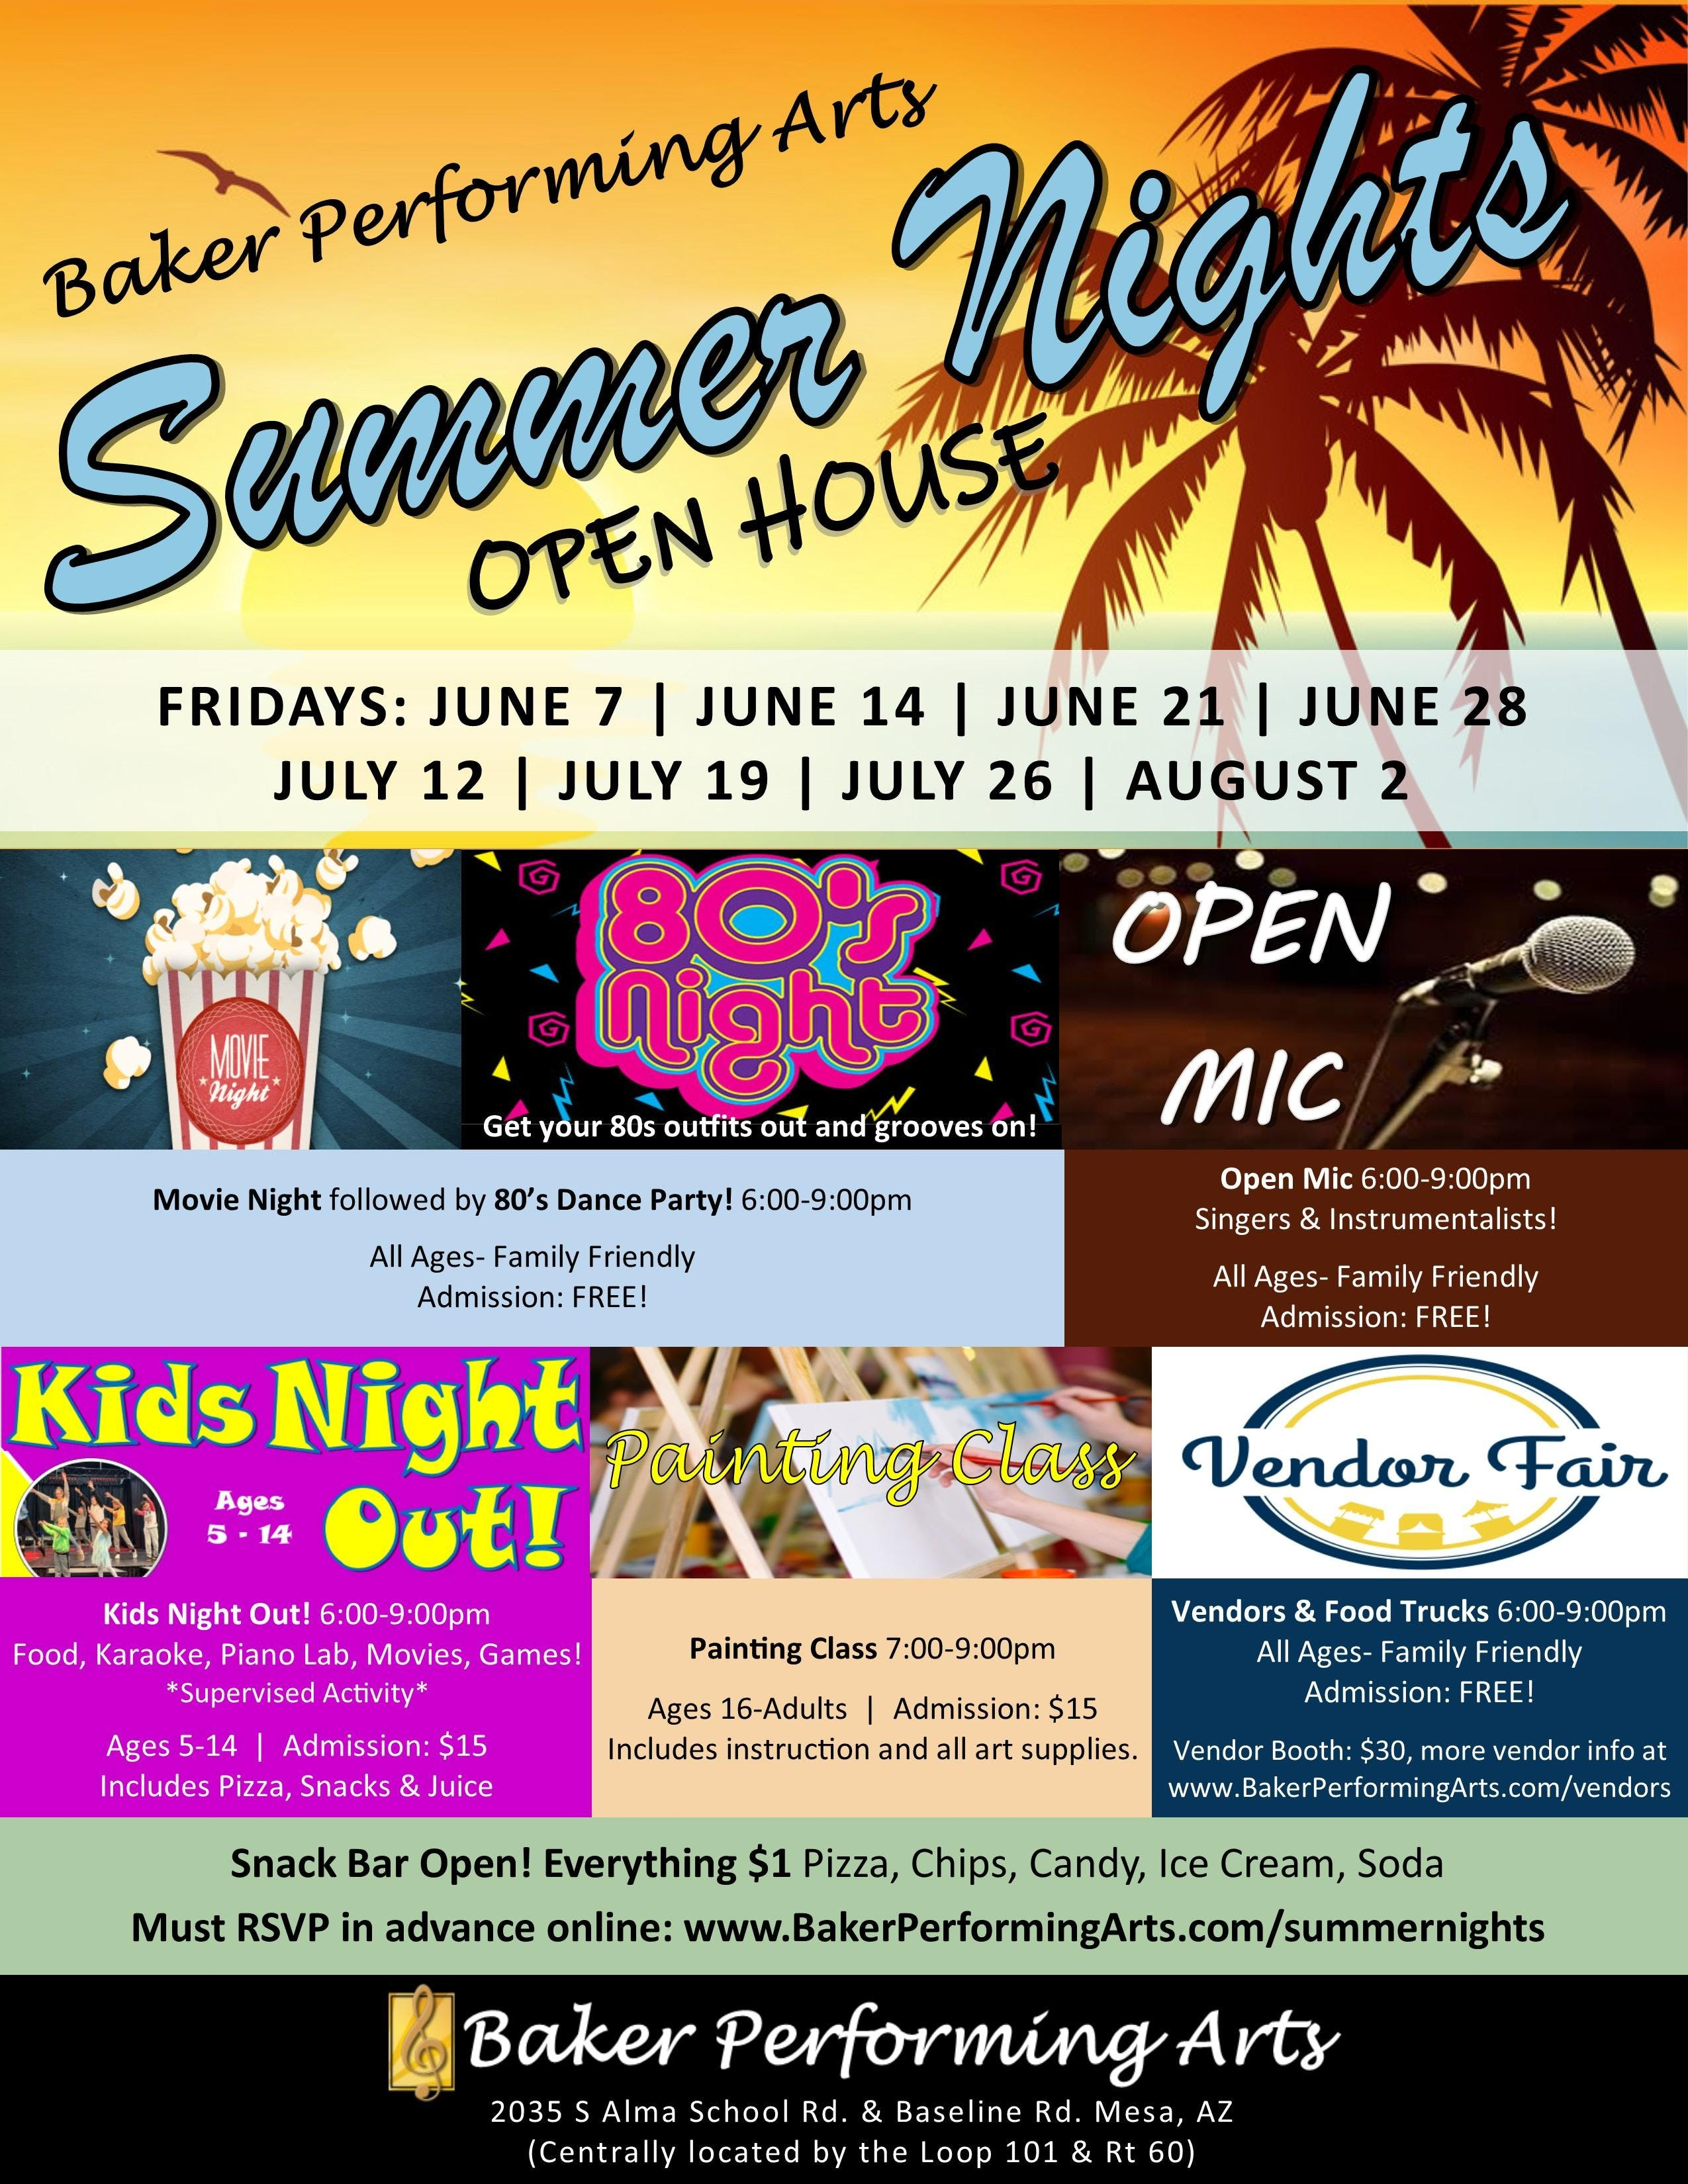 Summer Nights Open House! Friday, June 7th